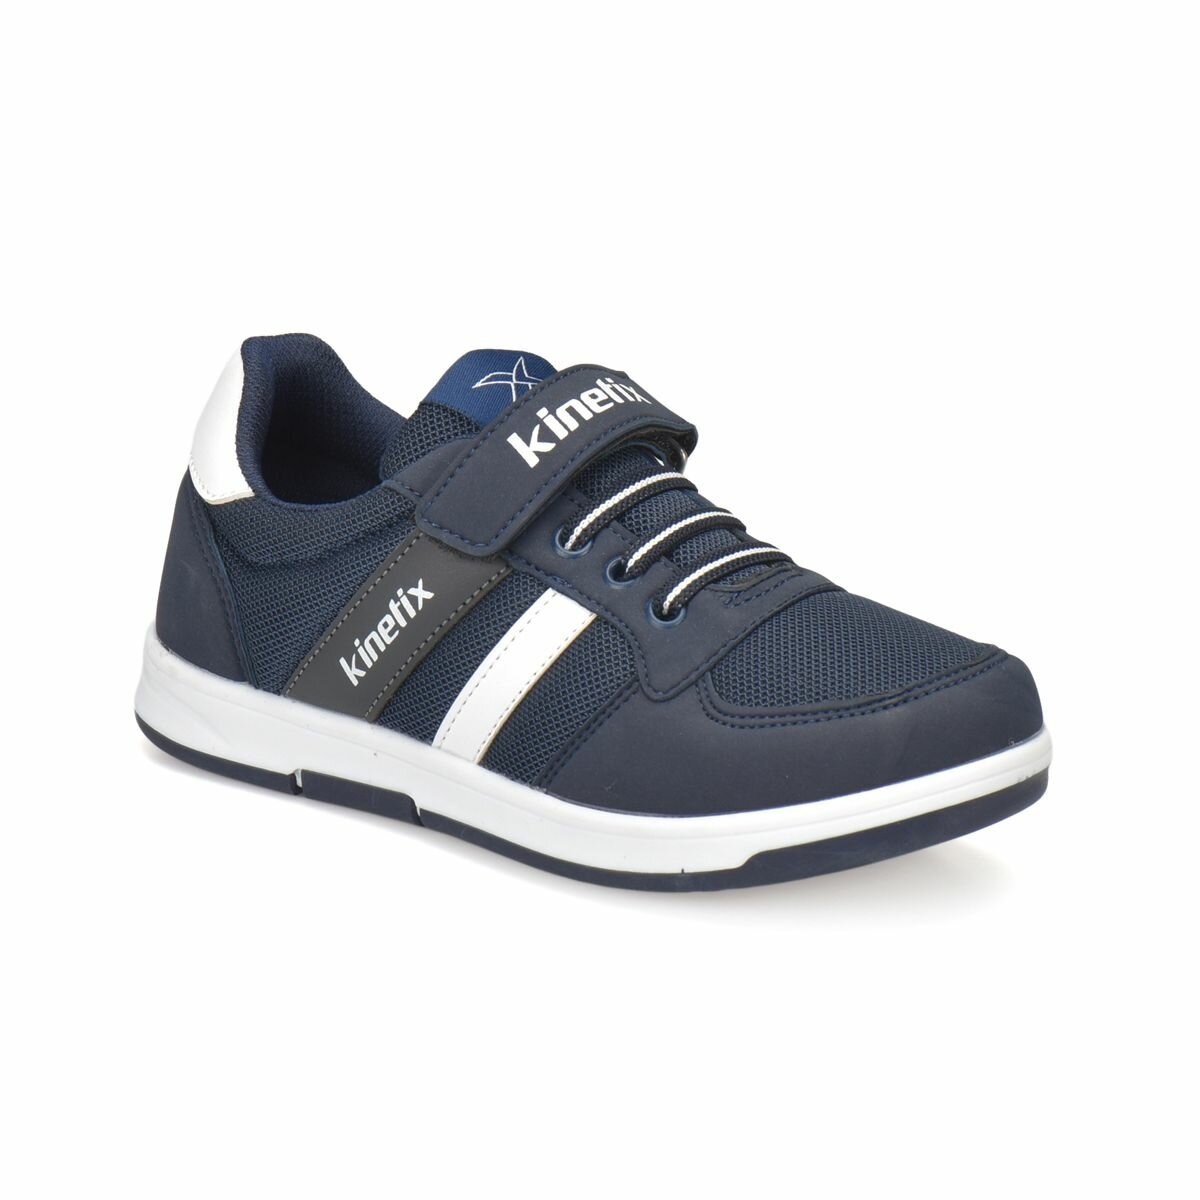 FLO UPTON Navy Blue Male Child Sneaker Shoes KINETIX